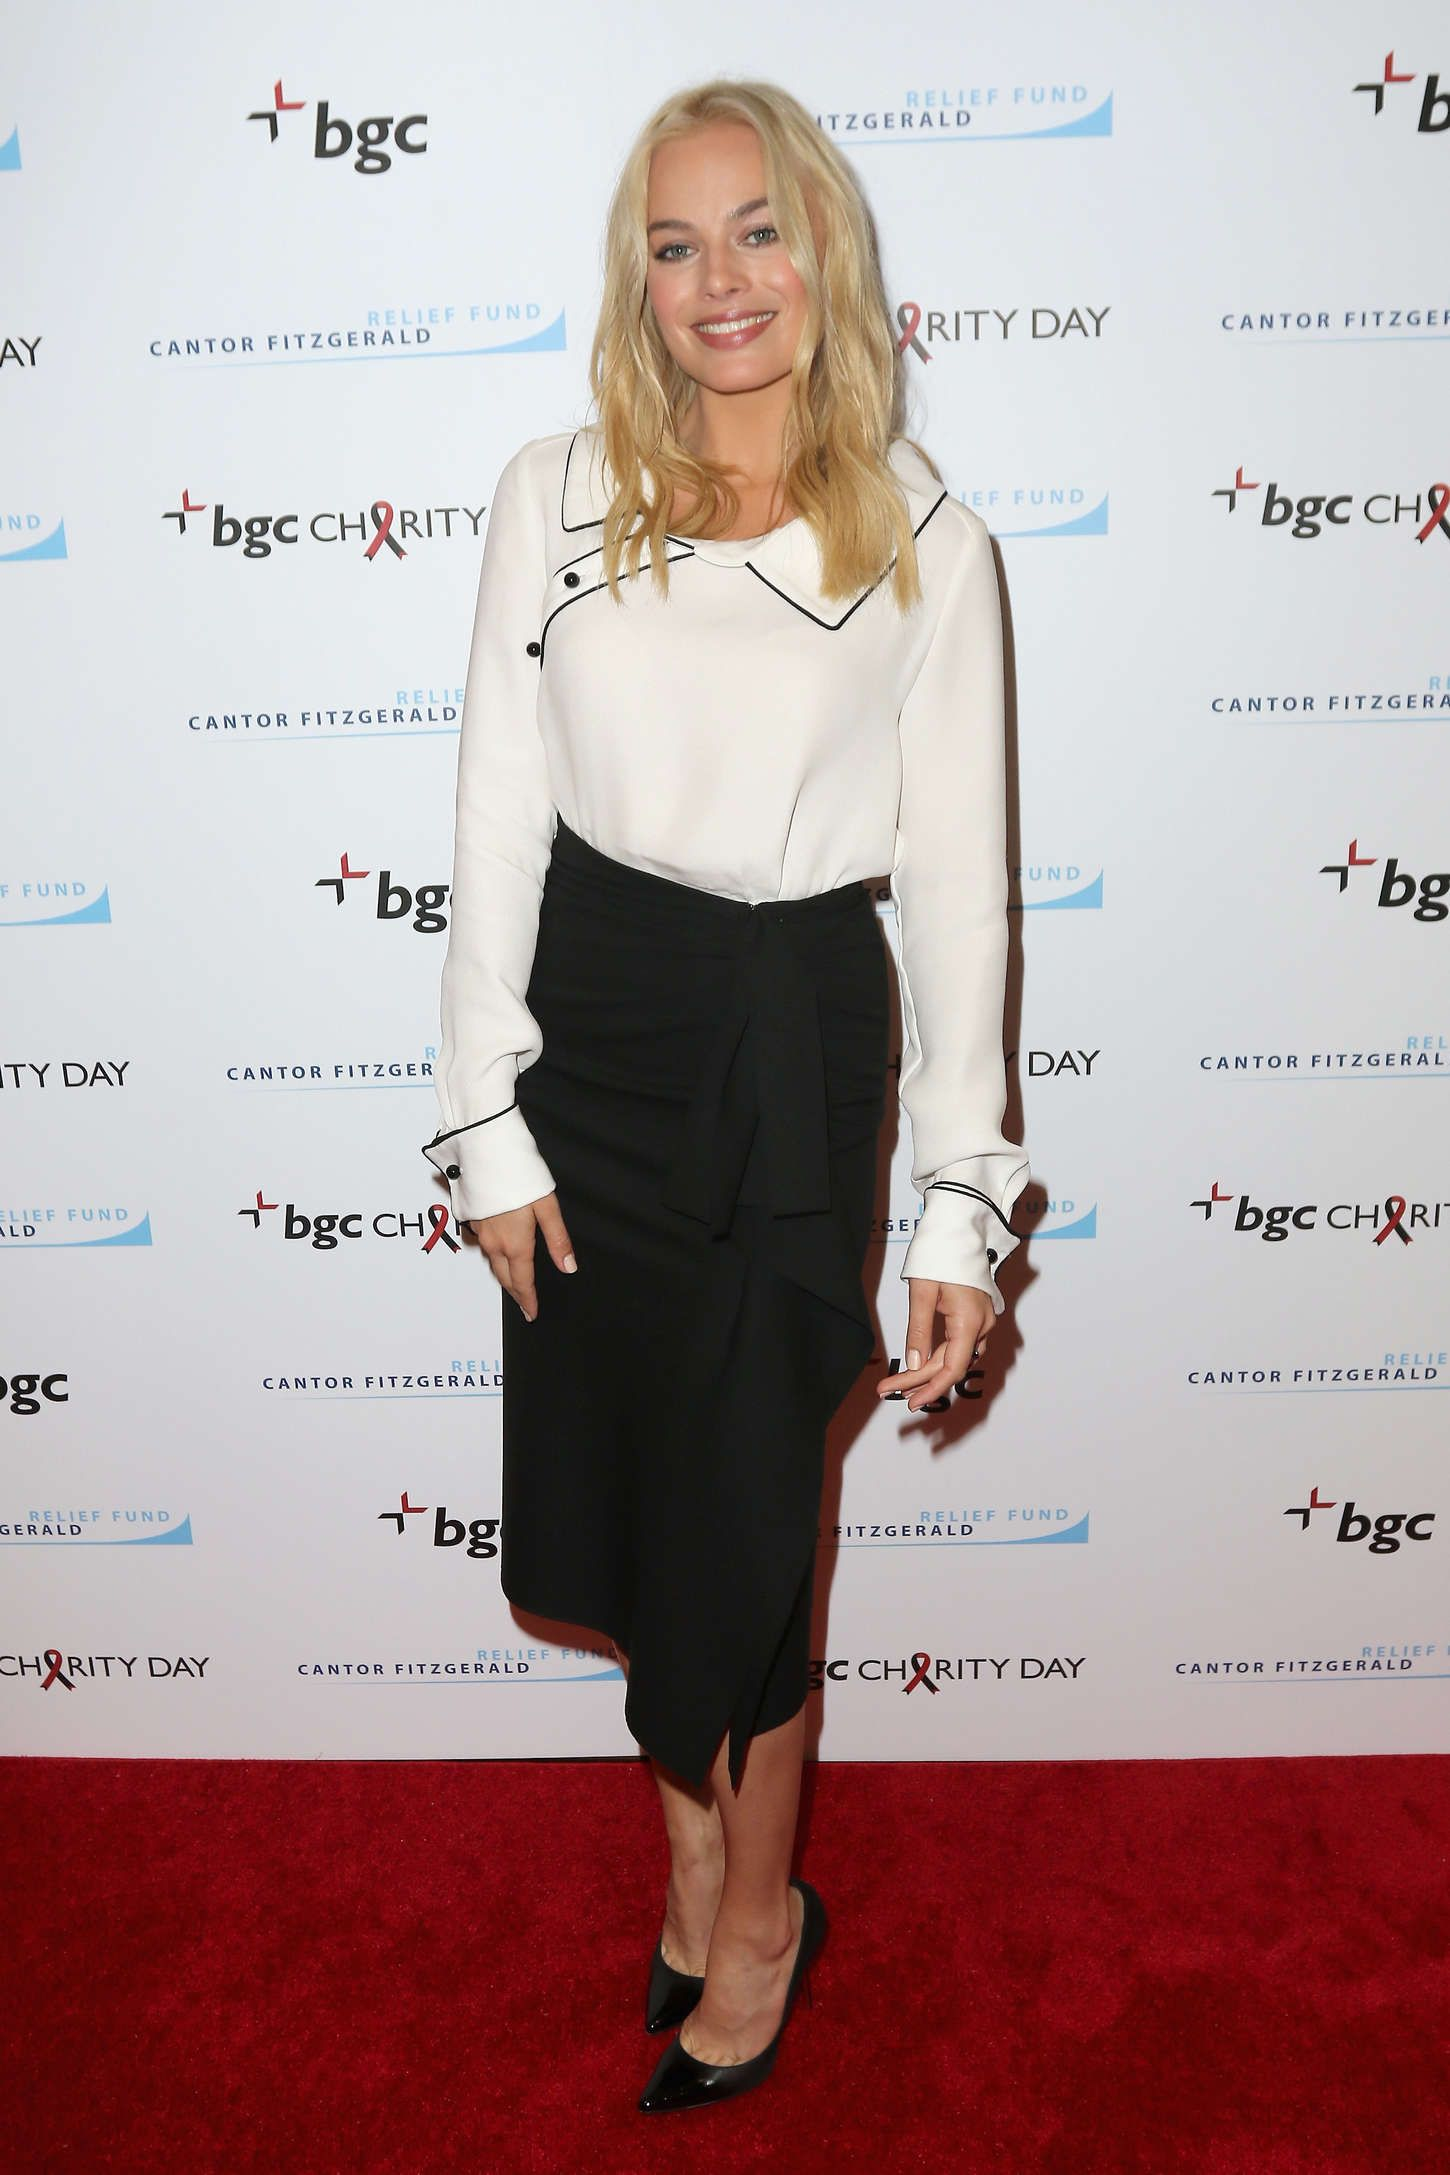 Margot Robbie Attends The Annual Charity Day Hosted By Cantor Fitzgerald And Bgc At Cantor Fitzgerald On September 11 2015 In New York C Margot Robbie Margot Robbie Pictures Hottest Female Celebrities